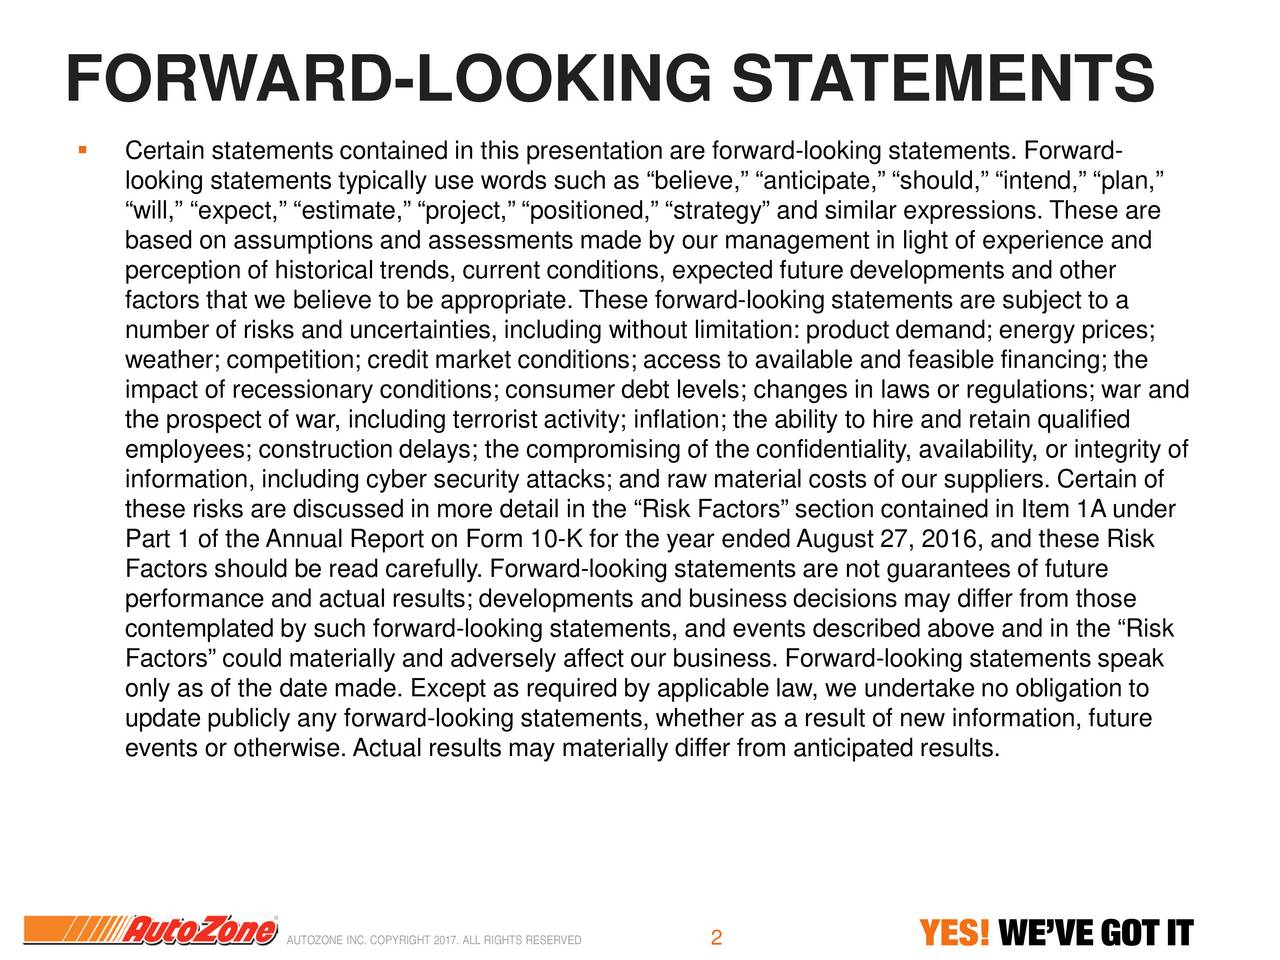 Certain statements contained in this presentation are forw-looking statements. Forward- looking statements typically use words such as believe, anticipate, should, intend, plan, will, expect, estimate, project, positioned, strategy and similar expressions. These are based on assumptions and assessments made by our management in light of experience and perception of historical trends, current conditions, expected future developments and other factors that we believe to be appropriate. These forward-looking statements are subject to a number of risks and uncertainties, including without limitation: product demand; energy prices; weather; competition; credit market conditions; access to available and feasible financing; the impact of recessionary conditions; consumer debt levels; changes in laws or regulations; war and the prospect of war, including terrorist activity; inflation; the ability to hire and retain qualified employees; construction delays; the compromising of the confidentiality, availability, or integrity of information, including cyber security attacks; and raw material costs of our suppliers. Certain of these risks are discussed in more detail in the Risk Factors section contained in Item 1A under Part 1 of the Annual Report on Form 10-K for the year ended August 27, 2016, and these Risk Factors should be read carefully. Forward-looking statements are not guarantees of future performance and actual results; developments and business decisions may differ from those contemplated by such forward-looking statements, and events described above and in the Risk Factors could materially and adversely affect our business. Forward-looking statements speak only as of the date made. Except as required by applicable law, we undertake no obligation to update publicly any forward-looking statements, whether as a result of new information, future events or otherwise. Actual results may materially differ from anticipated results. AUTOZONE INC. COPYRIGHT 2017. ALL RIG2TS 